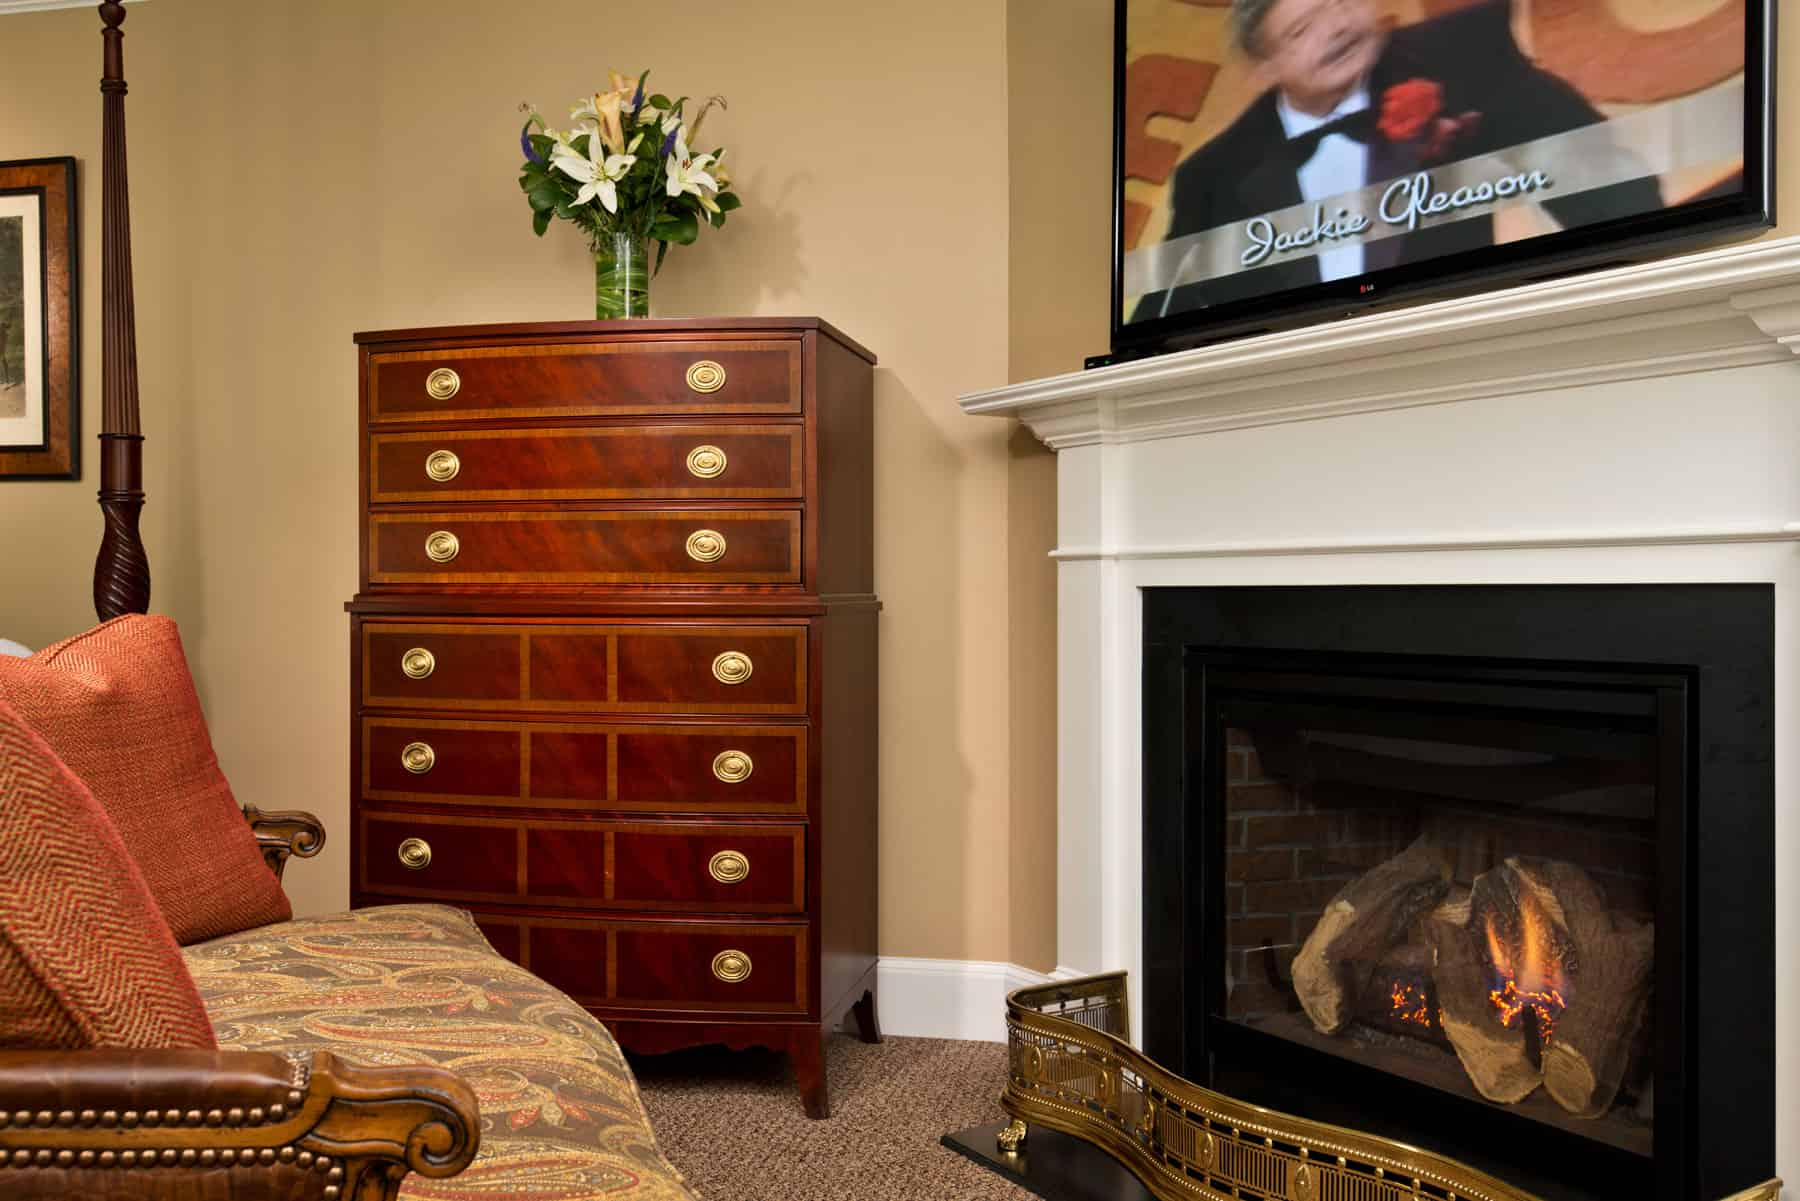 Windward State Room dresser and fireplace